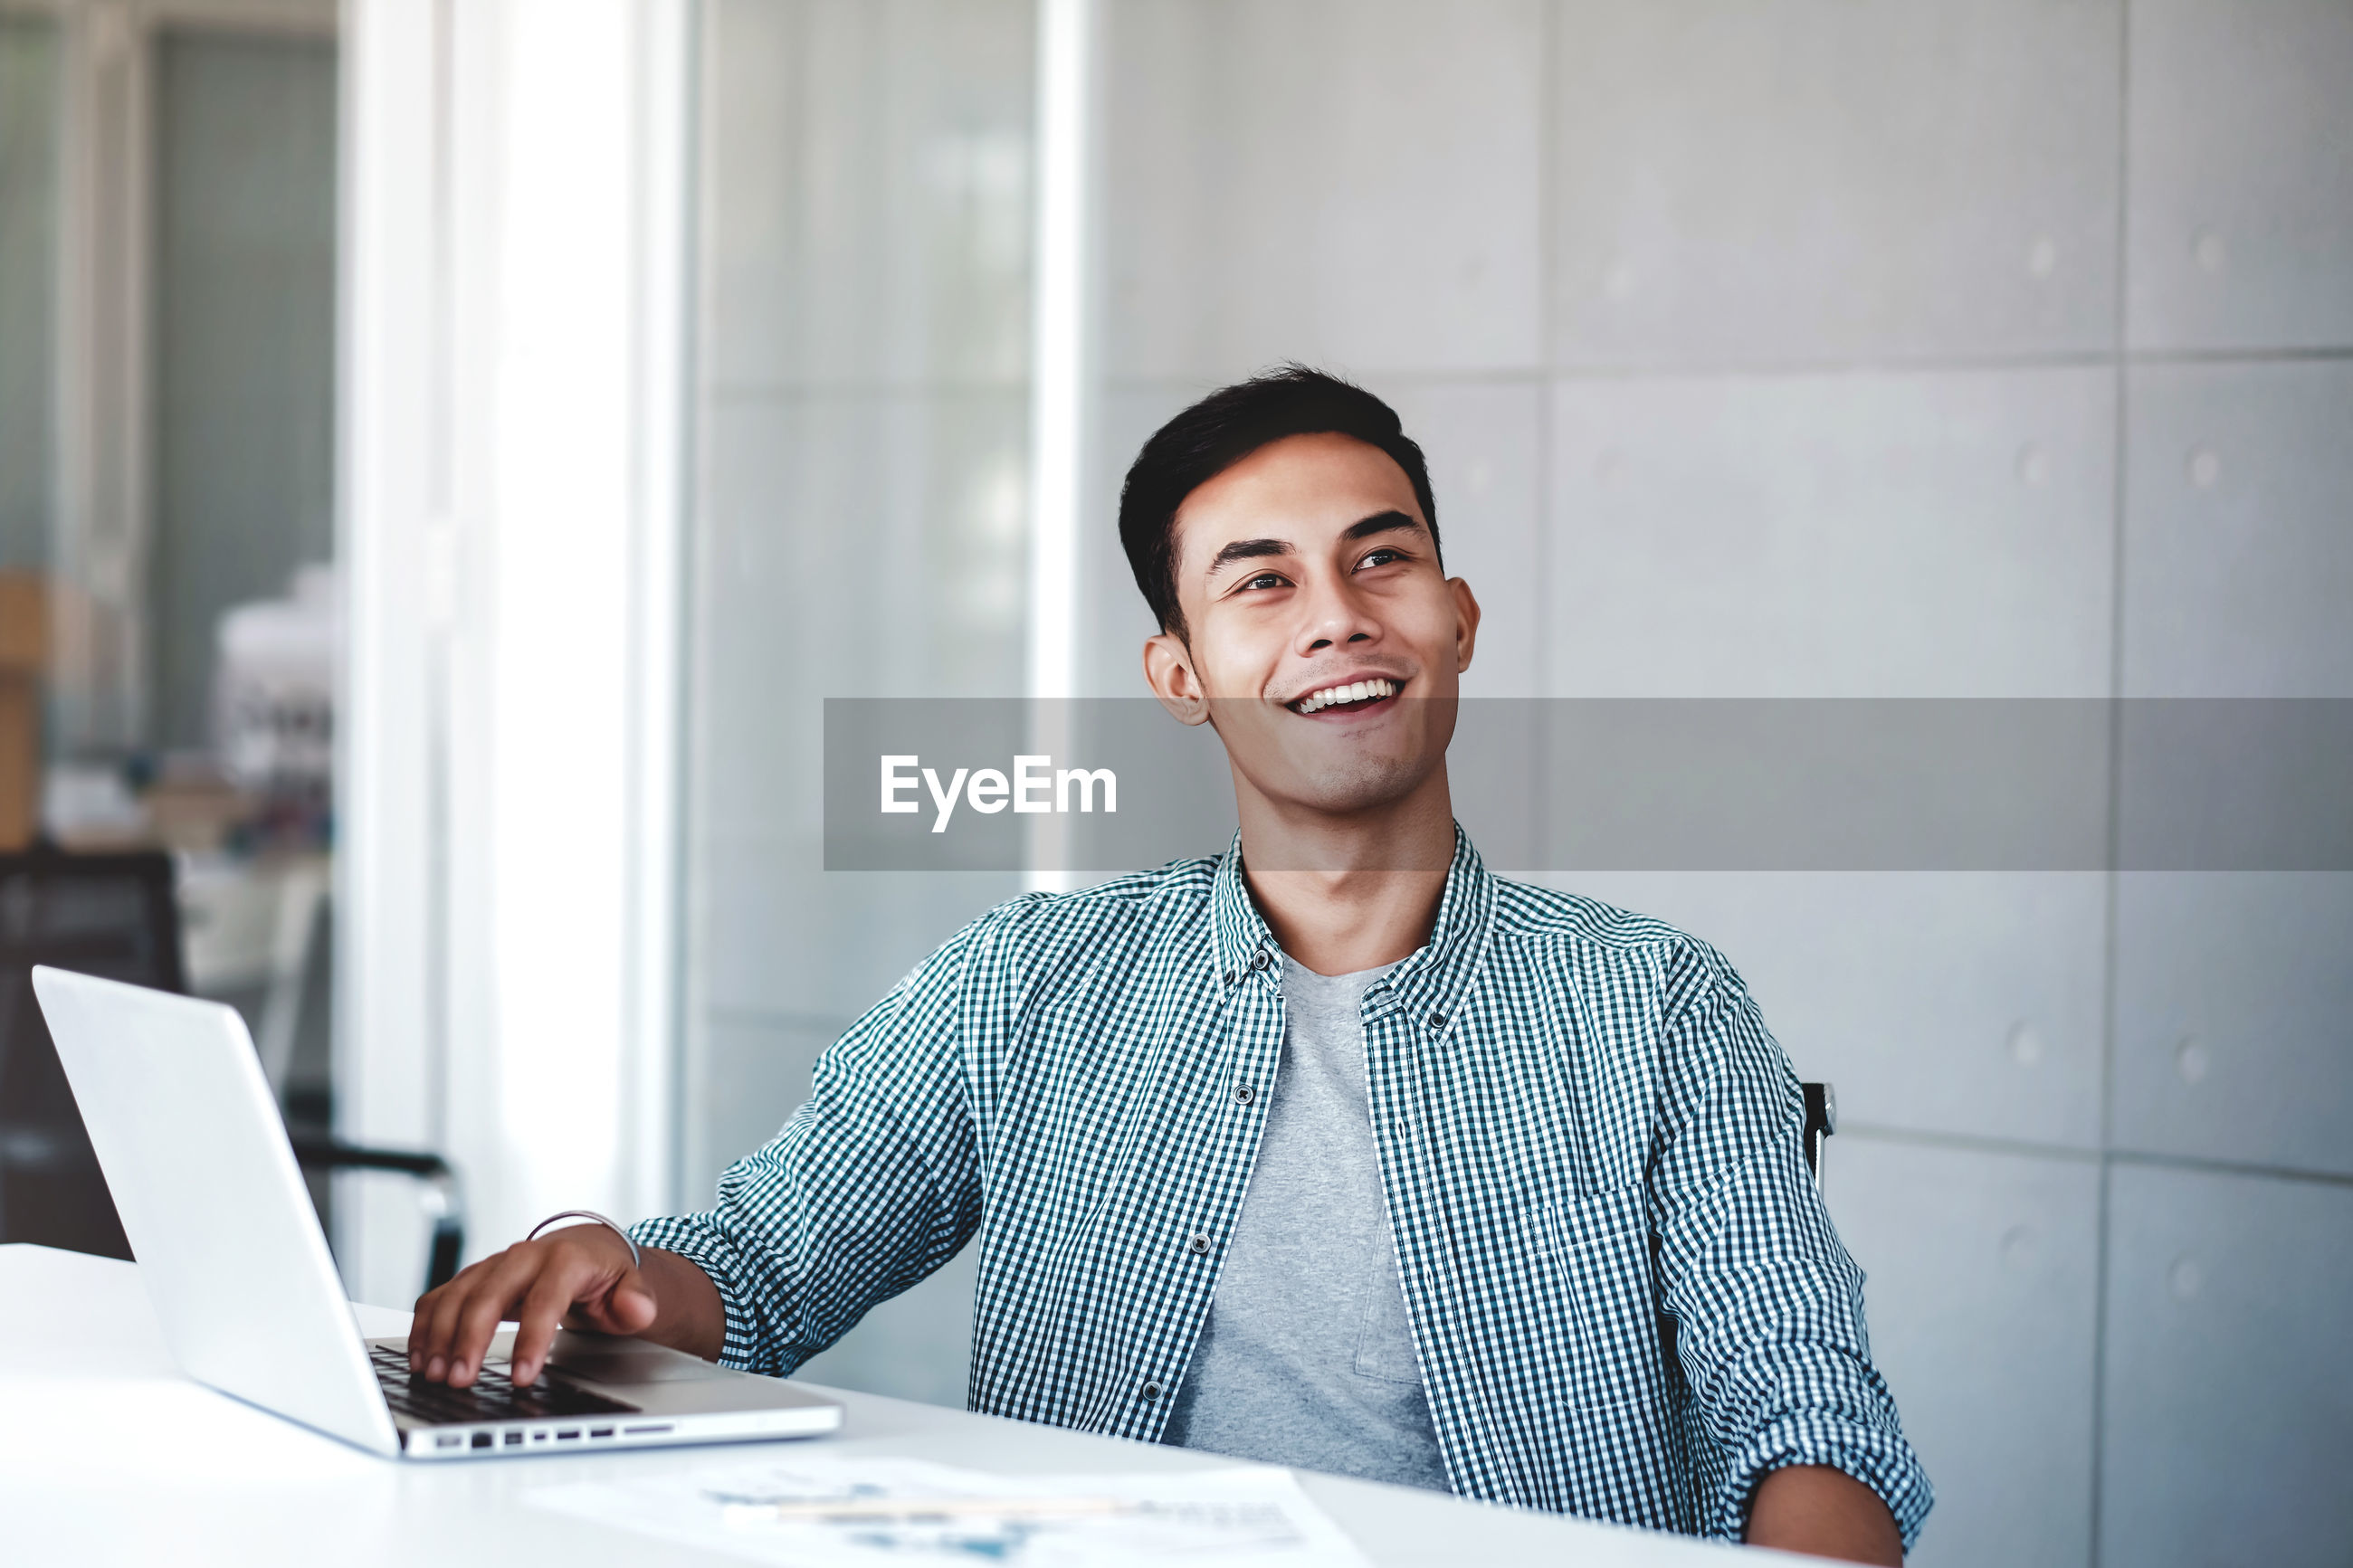 Smiling young businessman using laptop while sitting at office